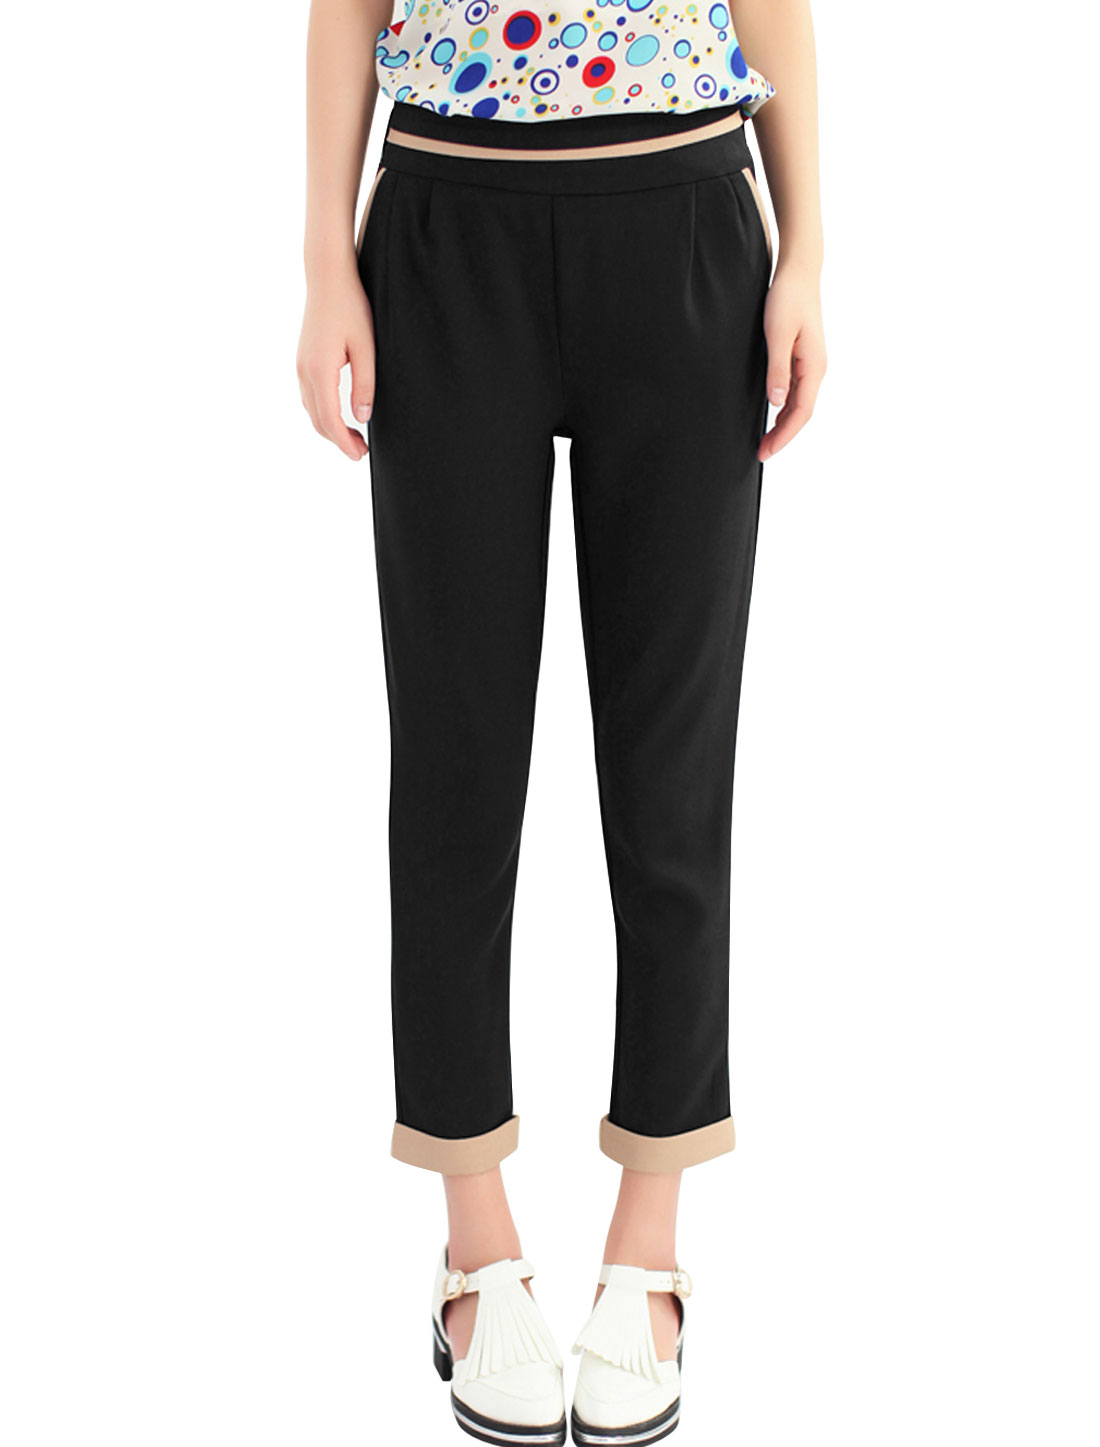 Ladies Black Eastic Waist Casual Capri Pants S